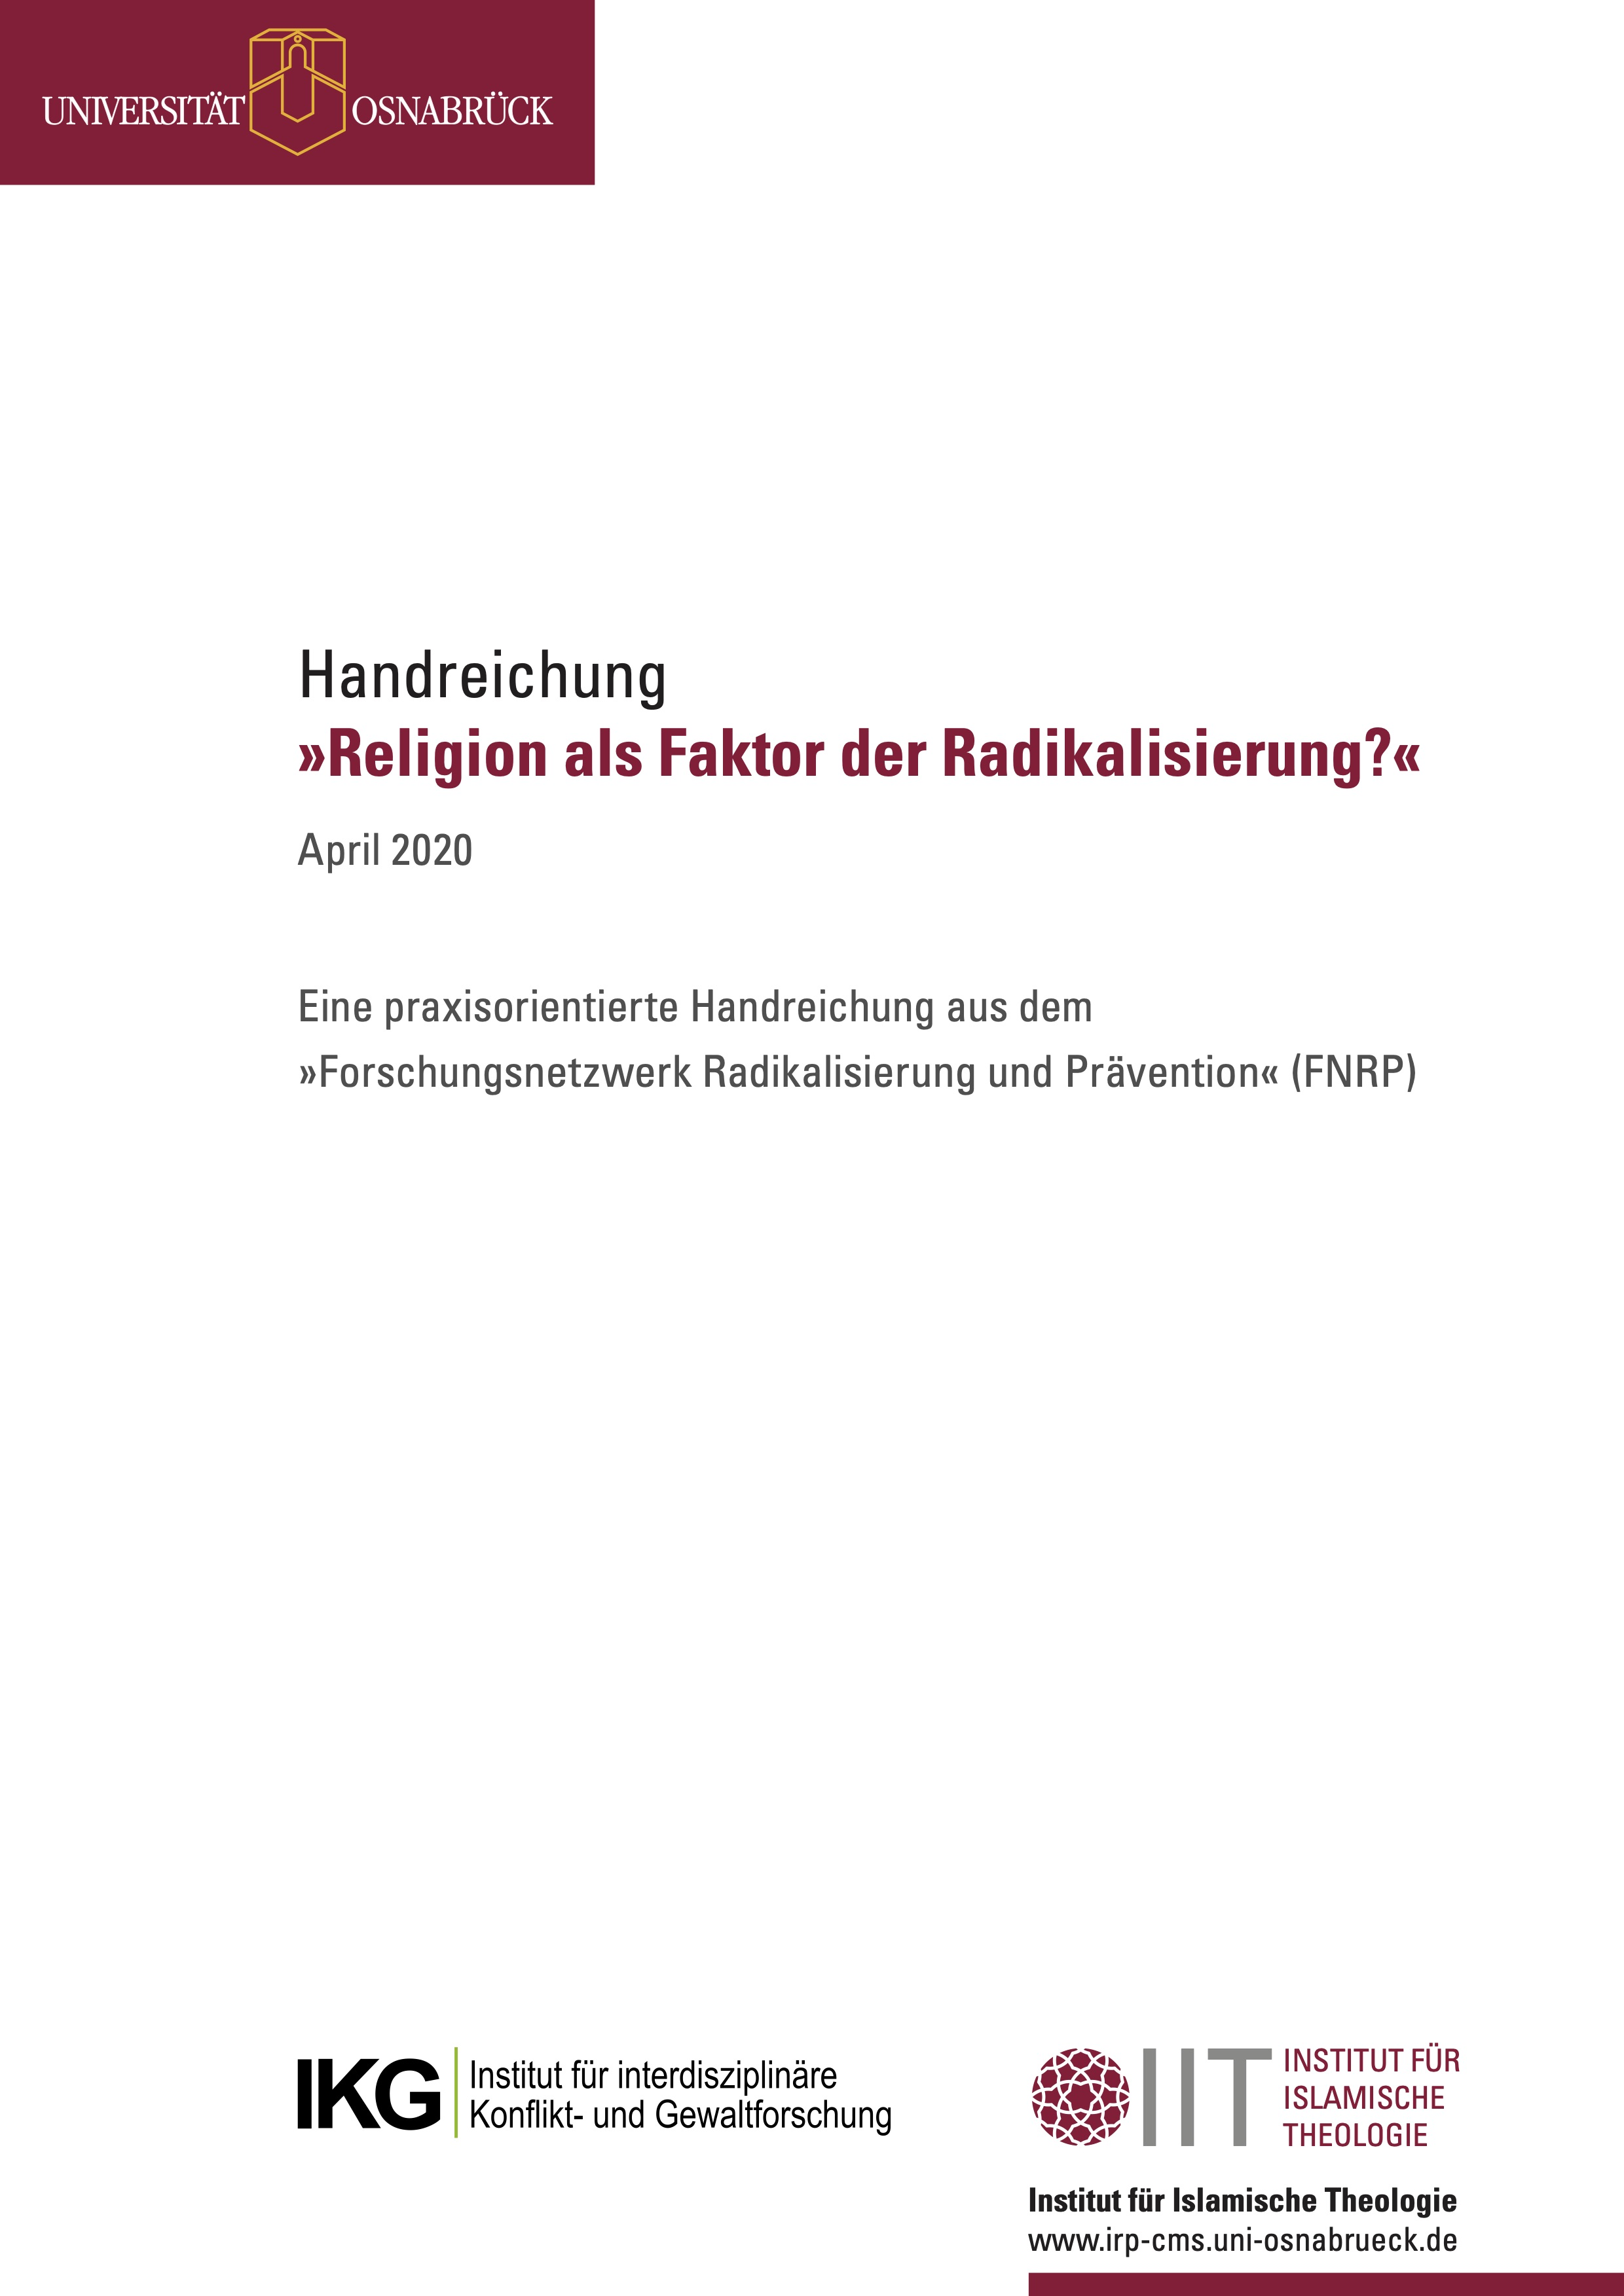 Download der Handreichung